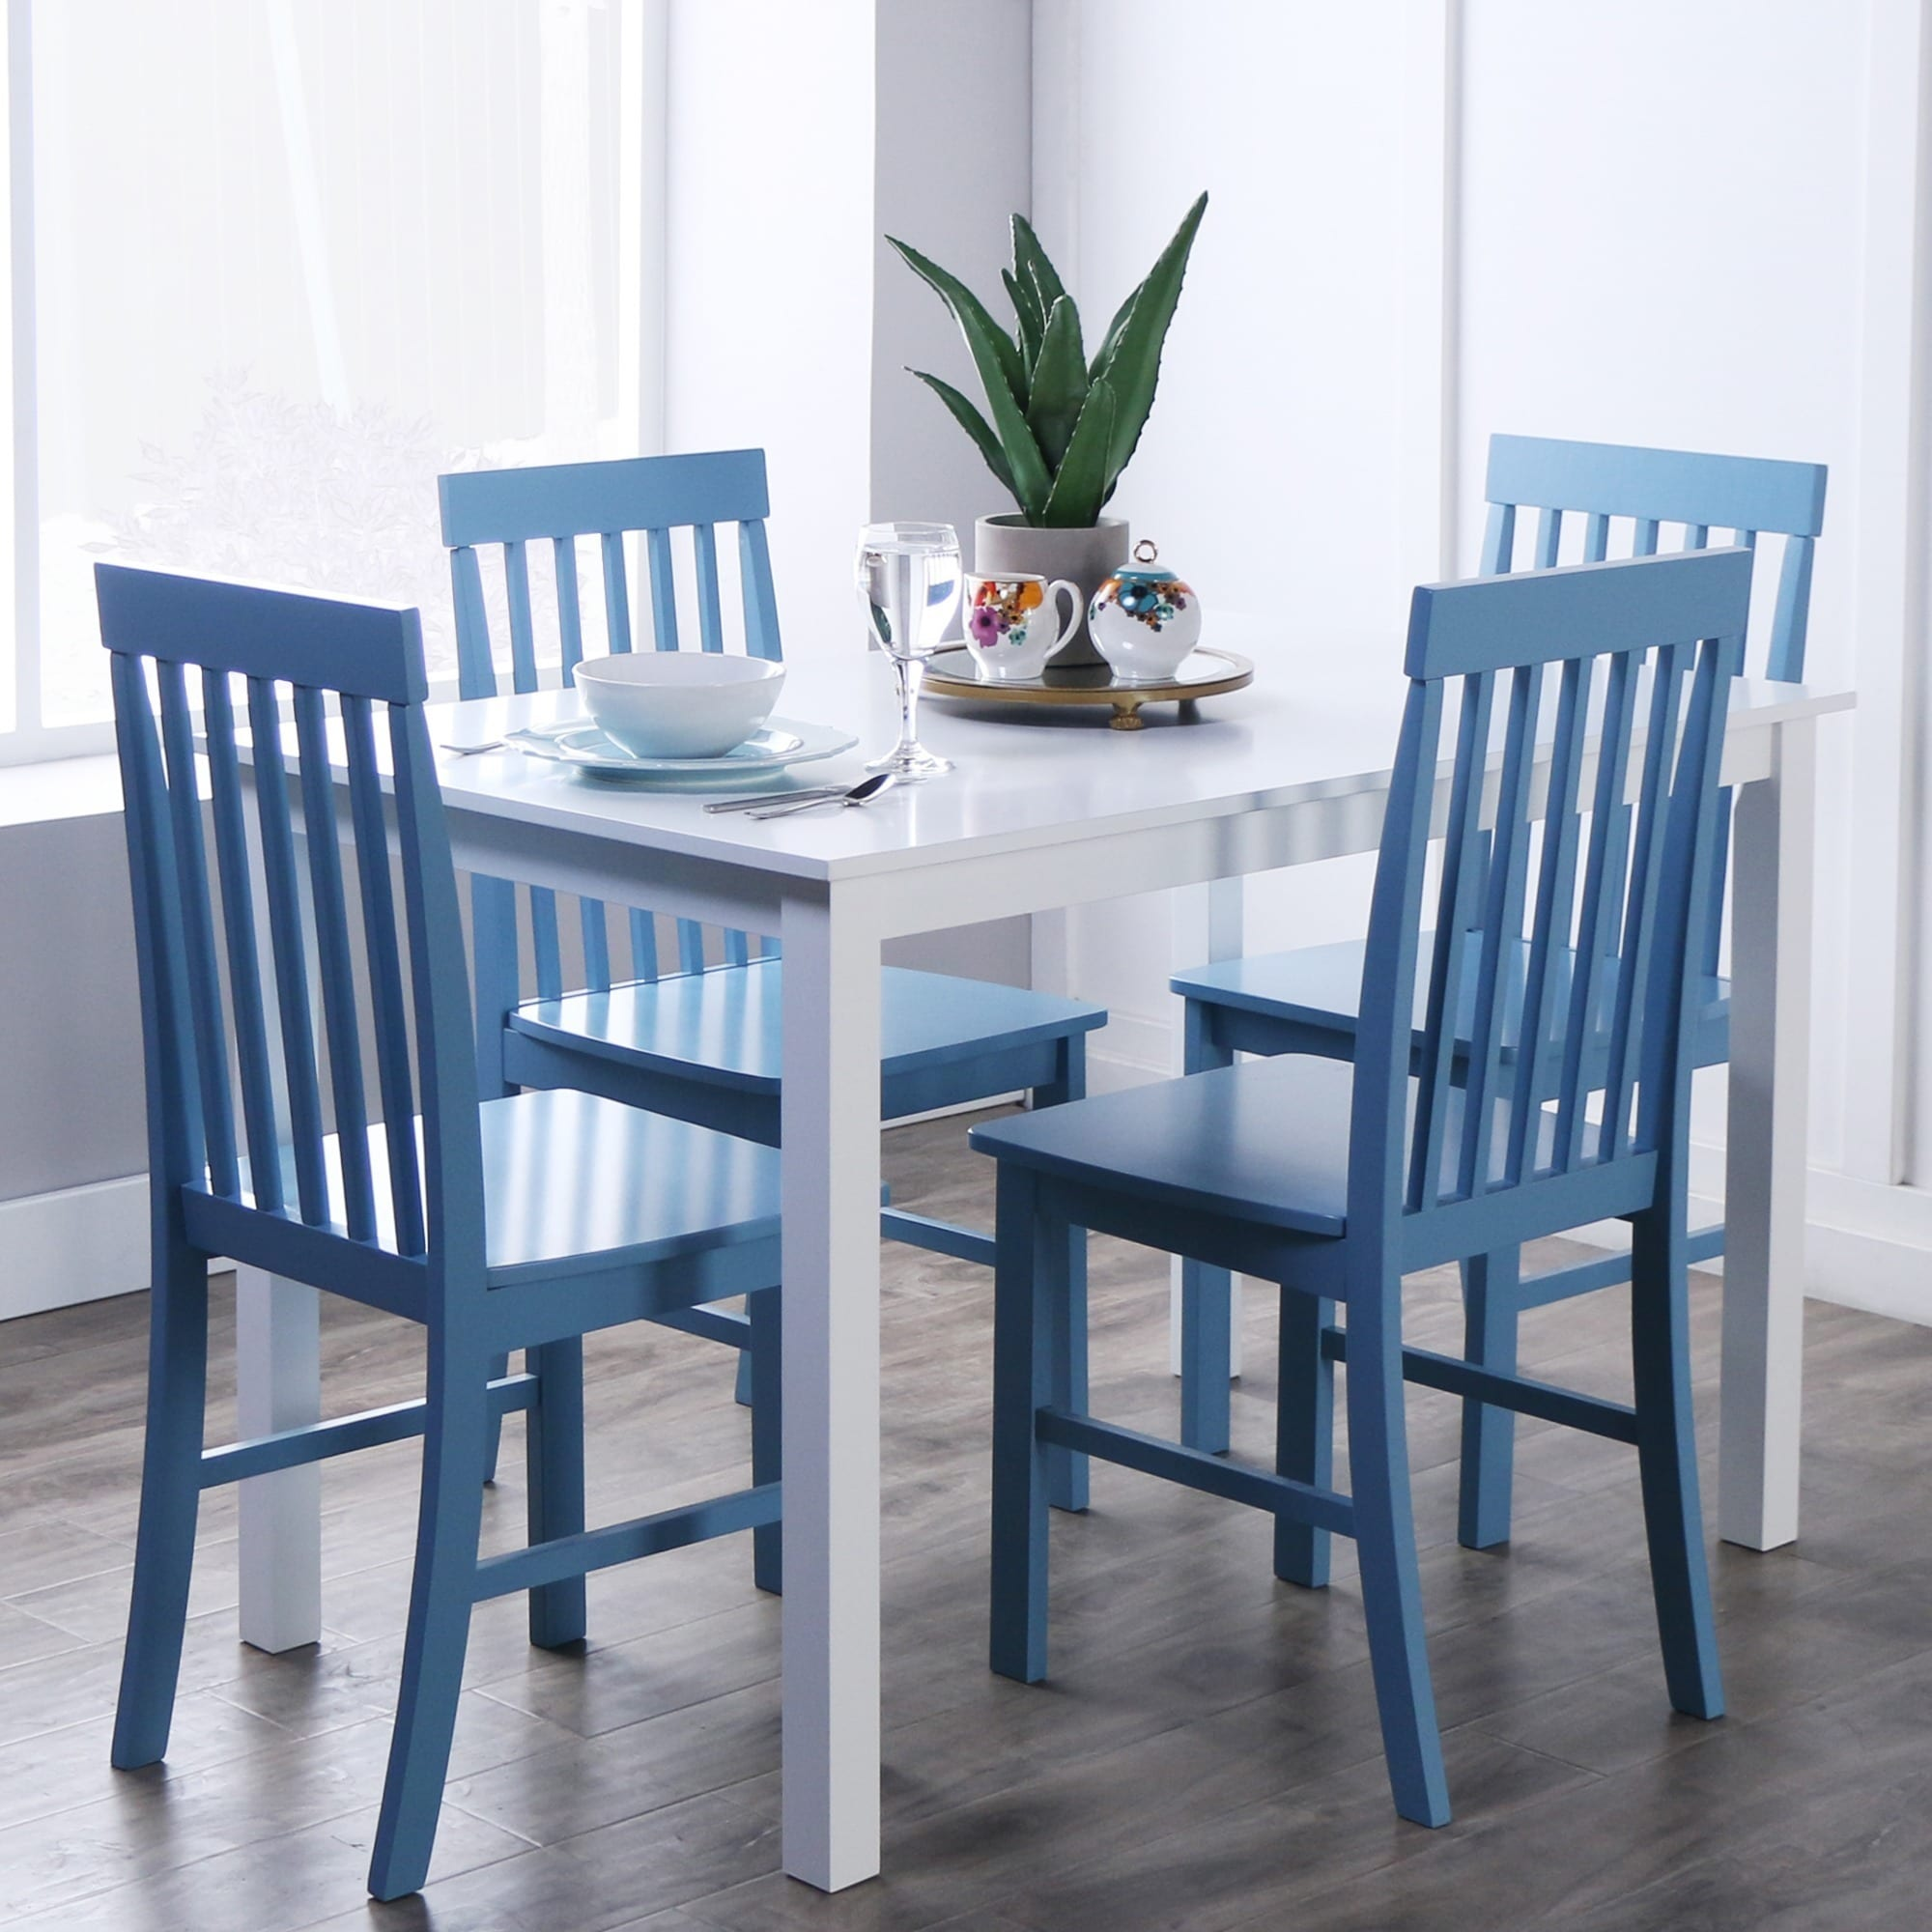 Charmant Shop Havenside Home 5 Piece Dining Set   White And Powder Blue   On Sale    Free Shipping Today   Overstock.com   20640339